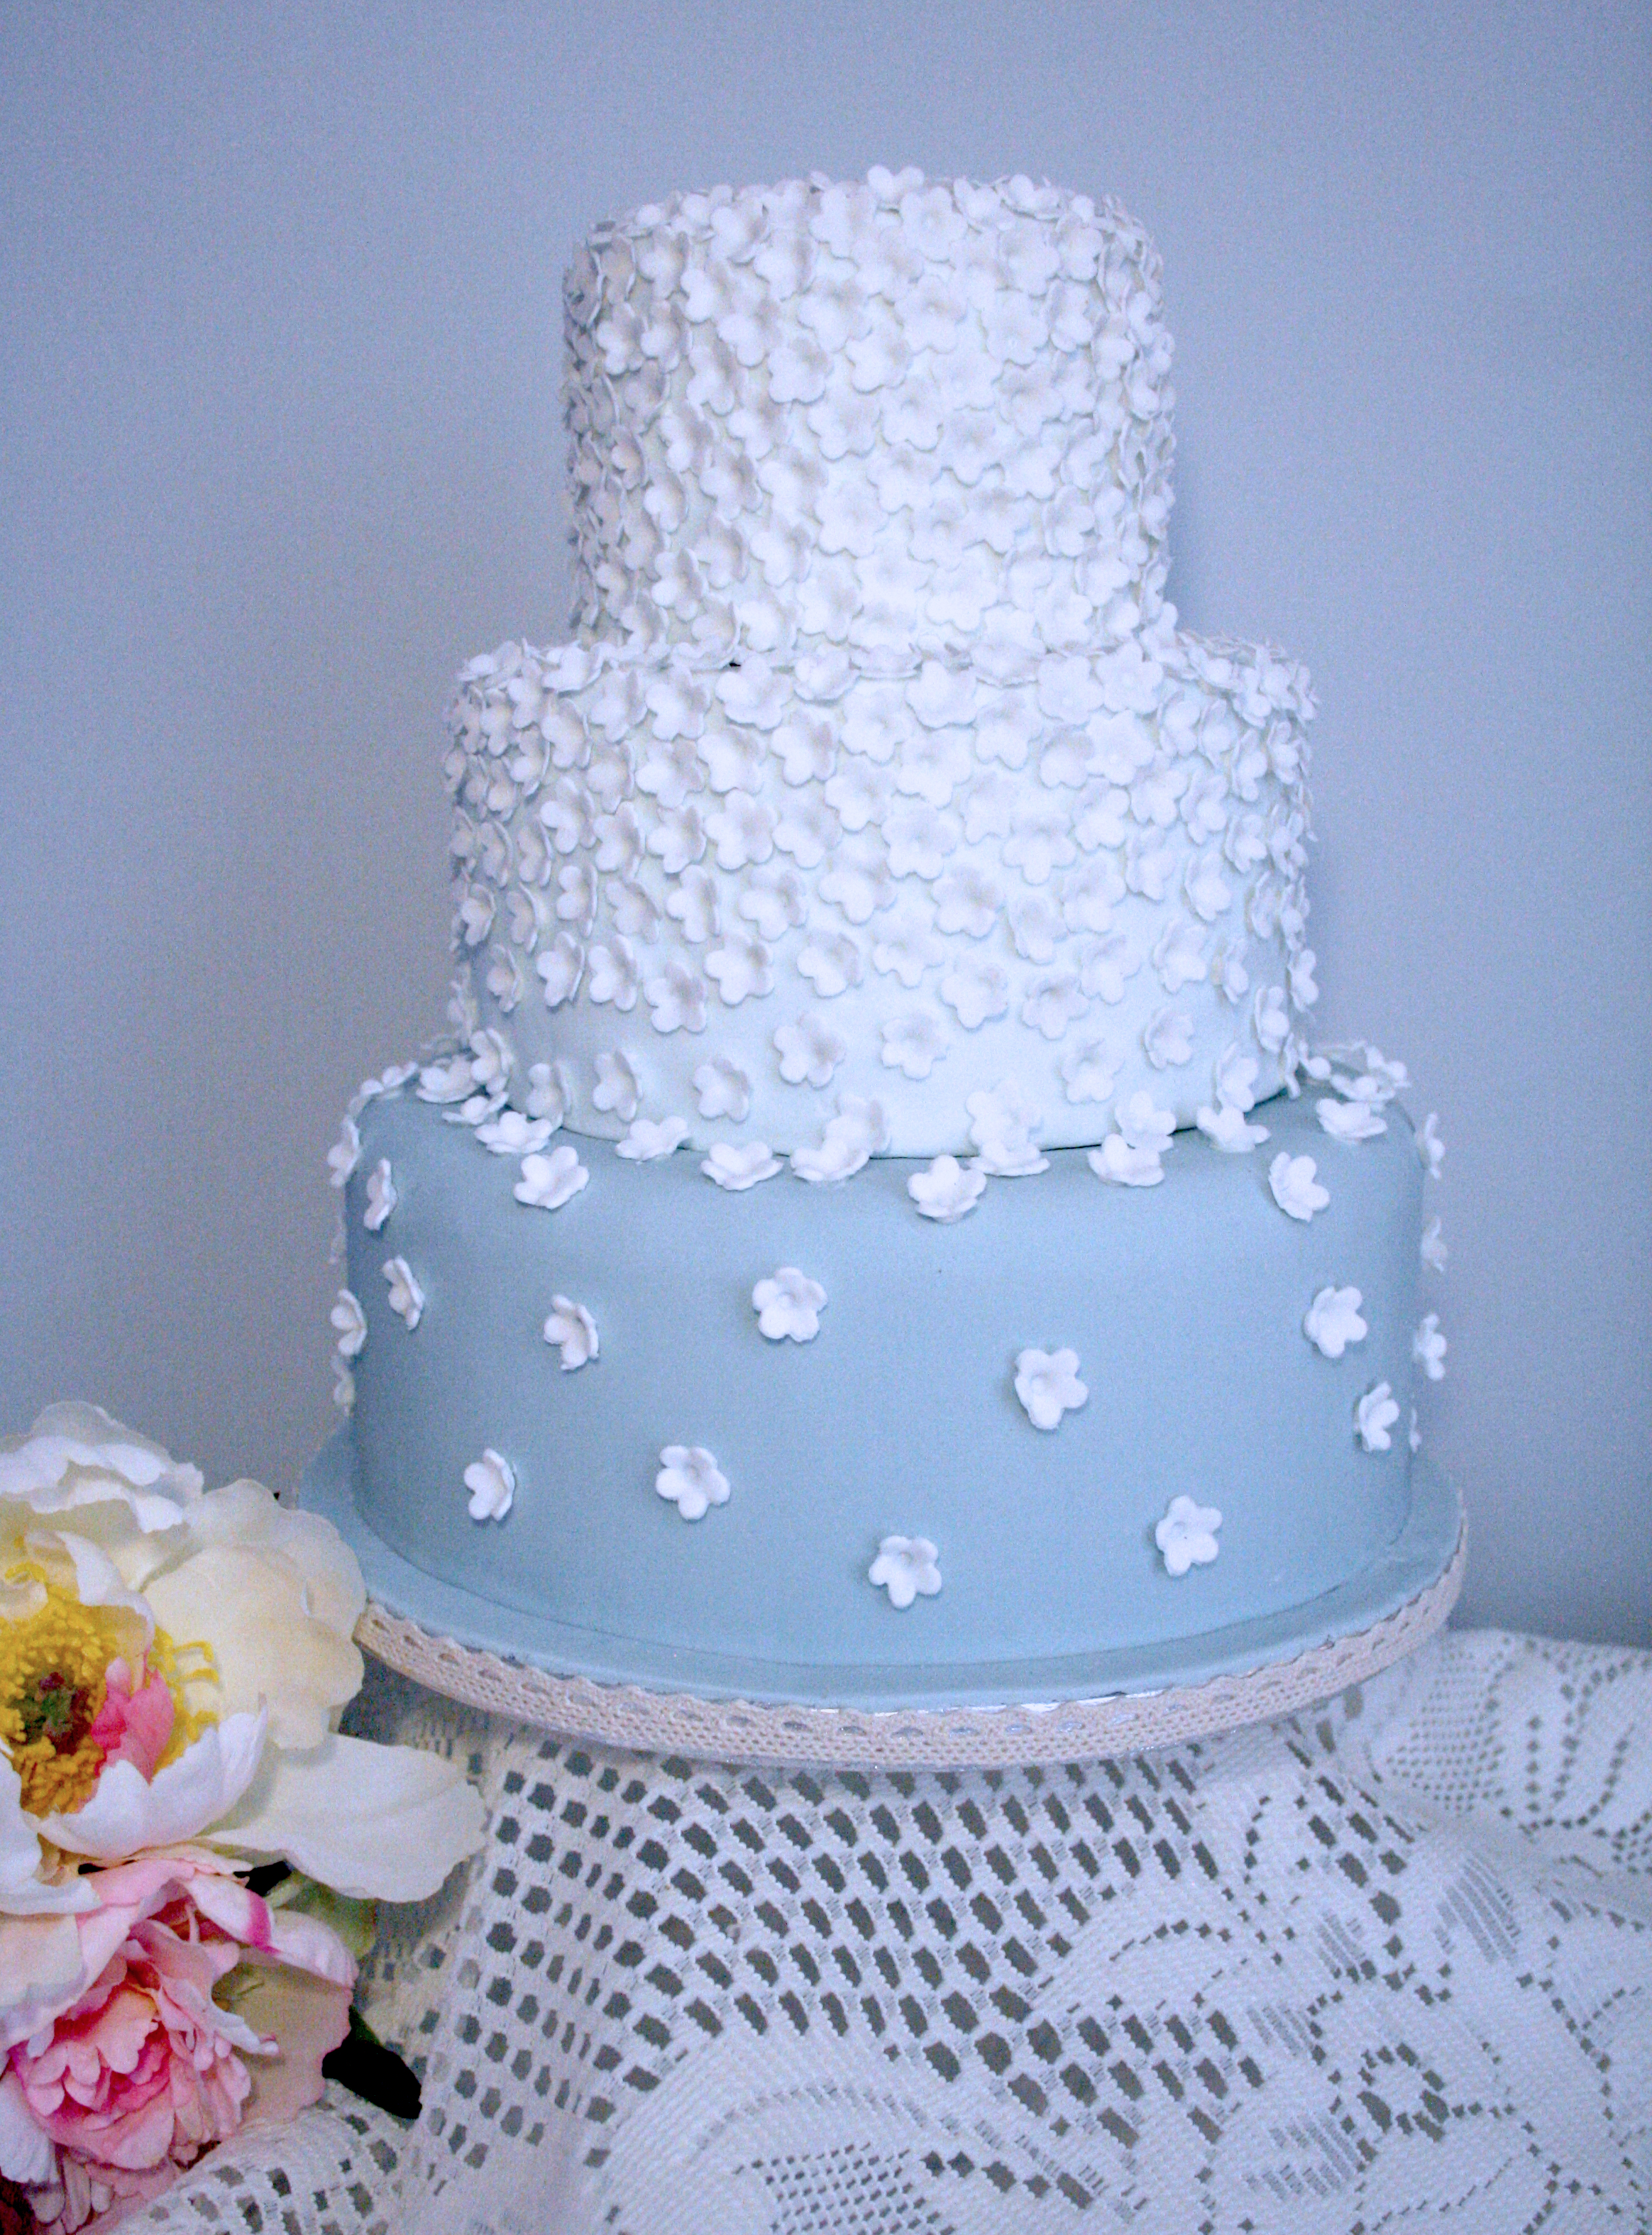 'Something Blue' Daisy Cake